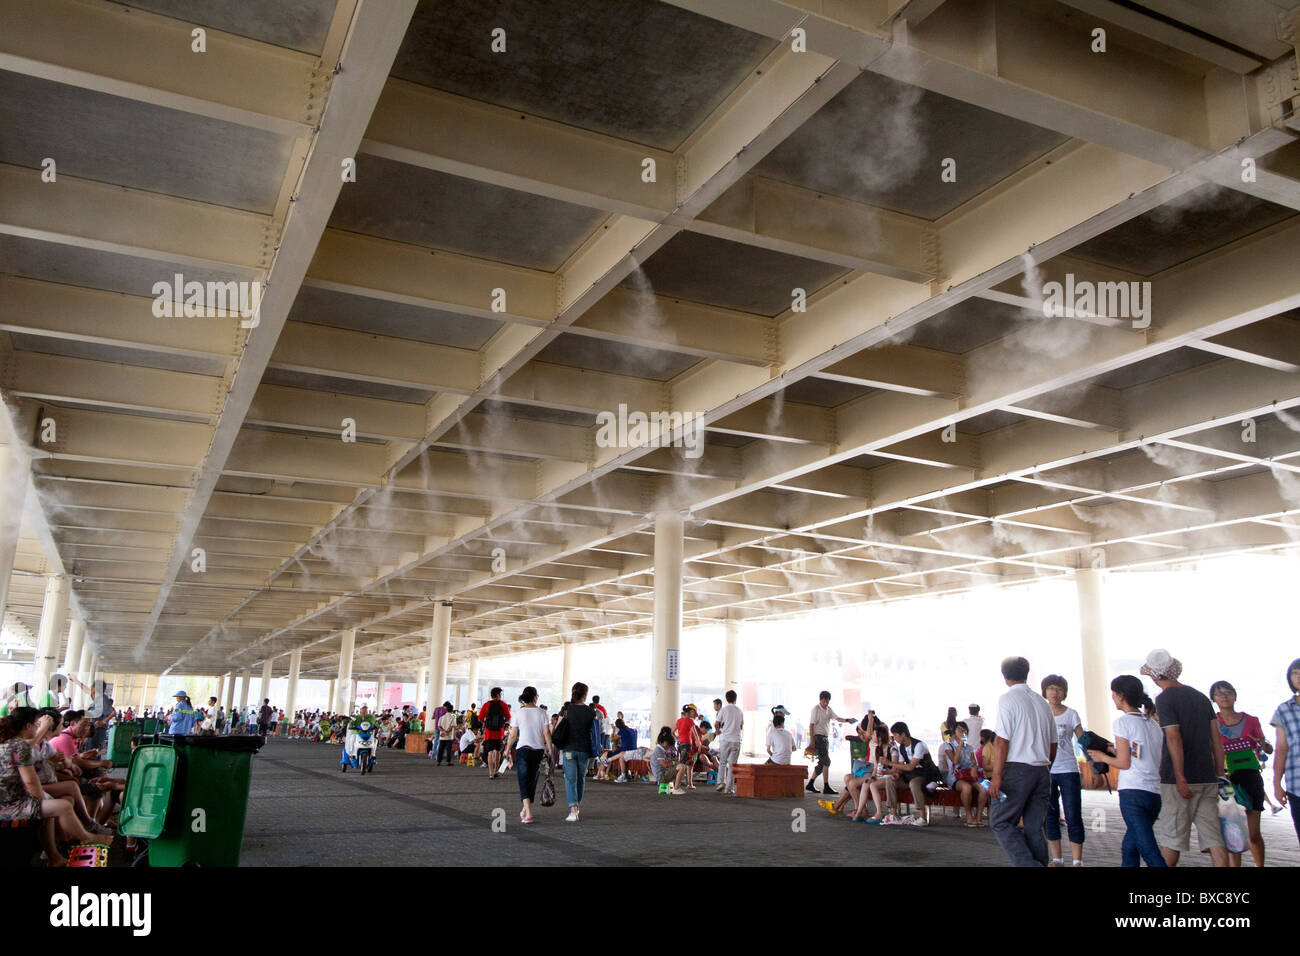 water vapor machine of shanghai expo for cooling the air - Stock Image